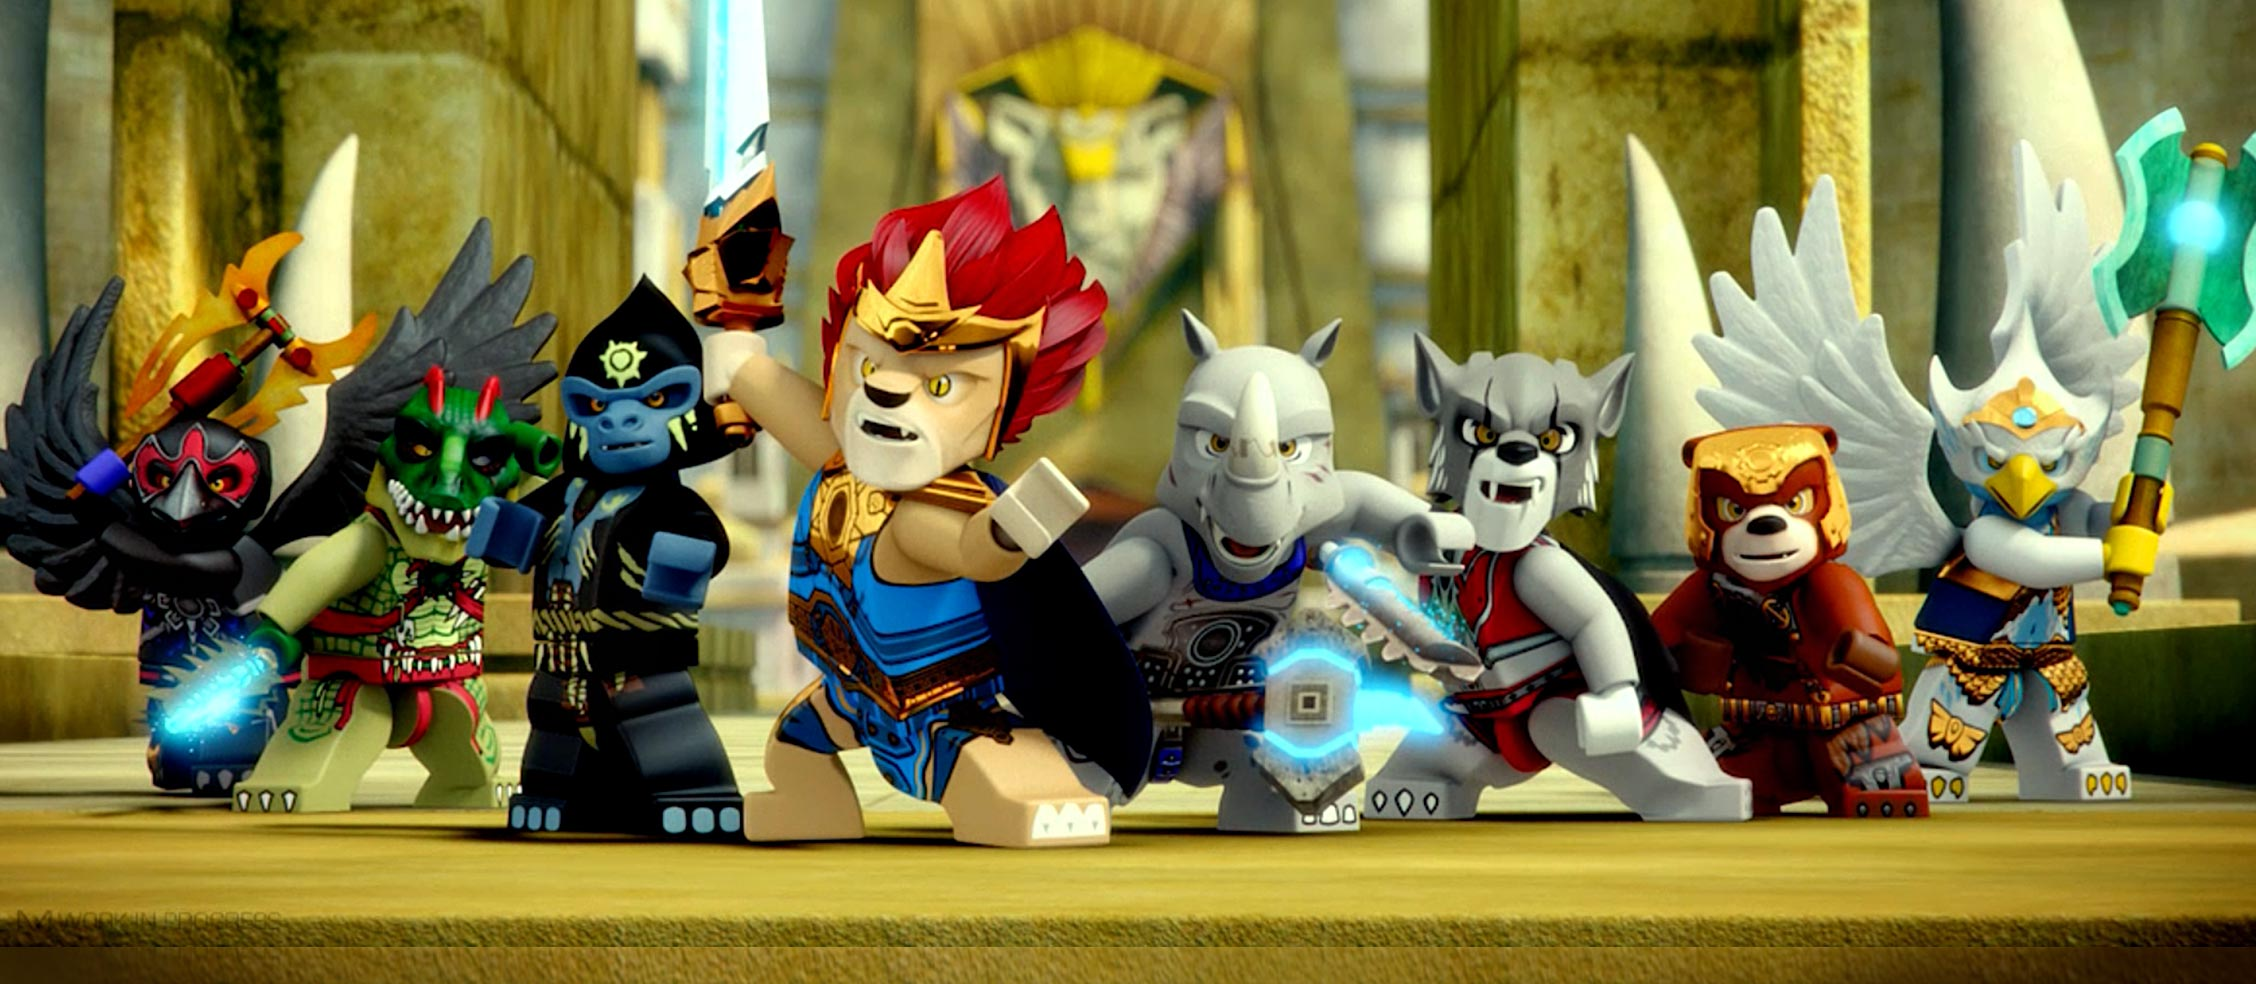 Lego Chima   Furries   Know Your Meme